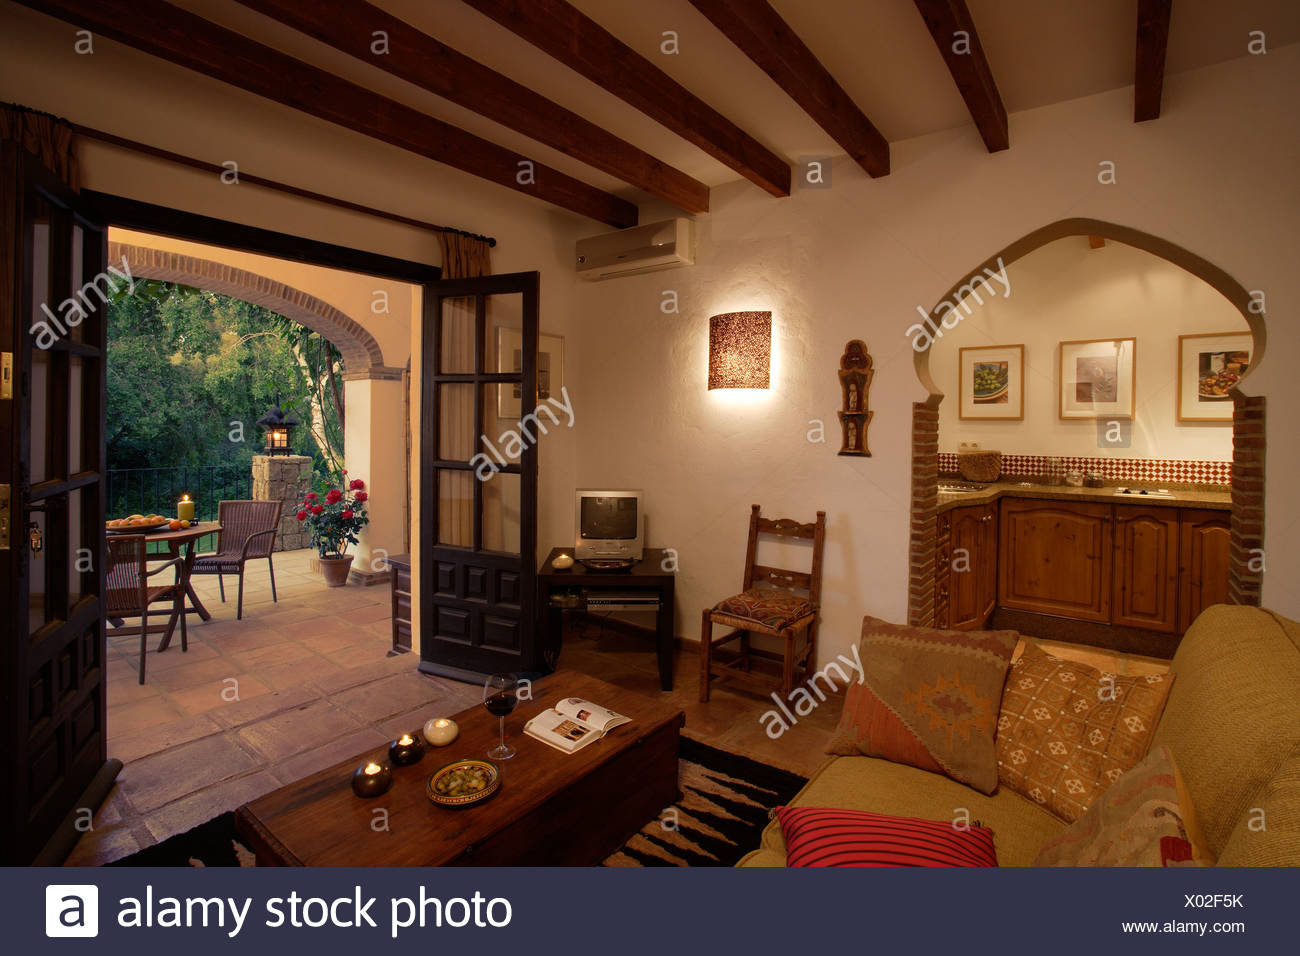 veranda living rooms room sets under 1000 spanish with arched doorway to kitchen and double doors open